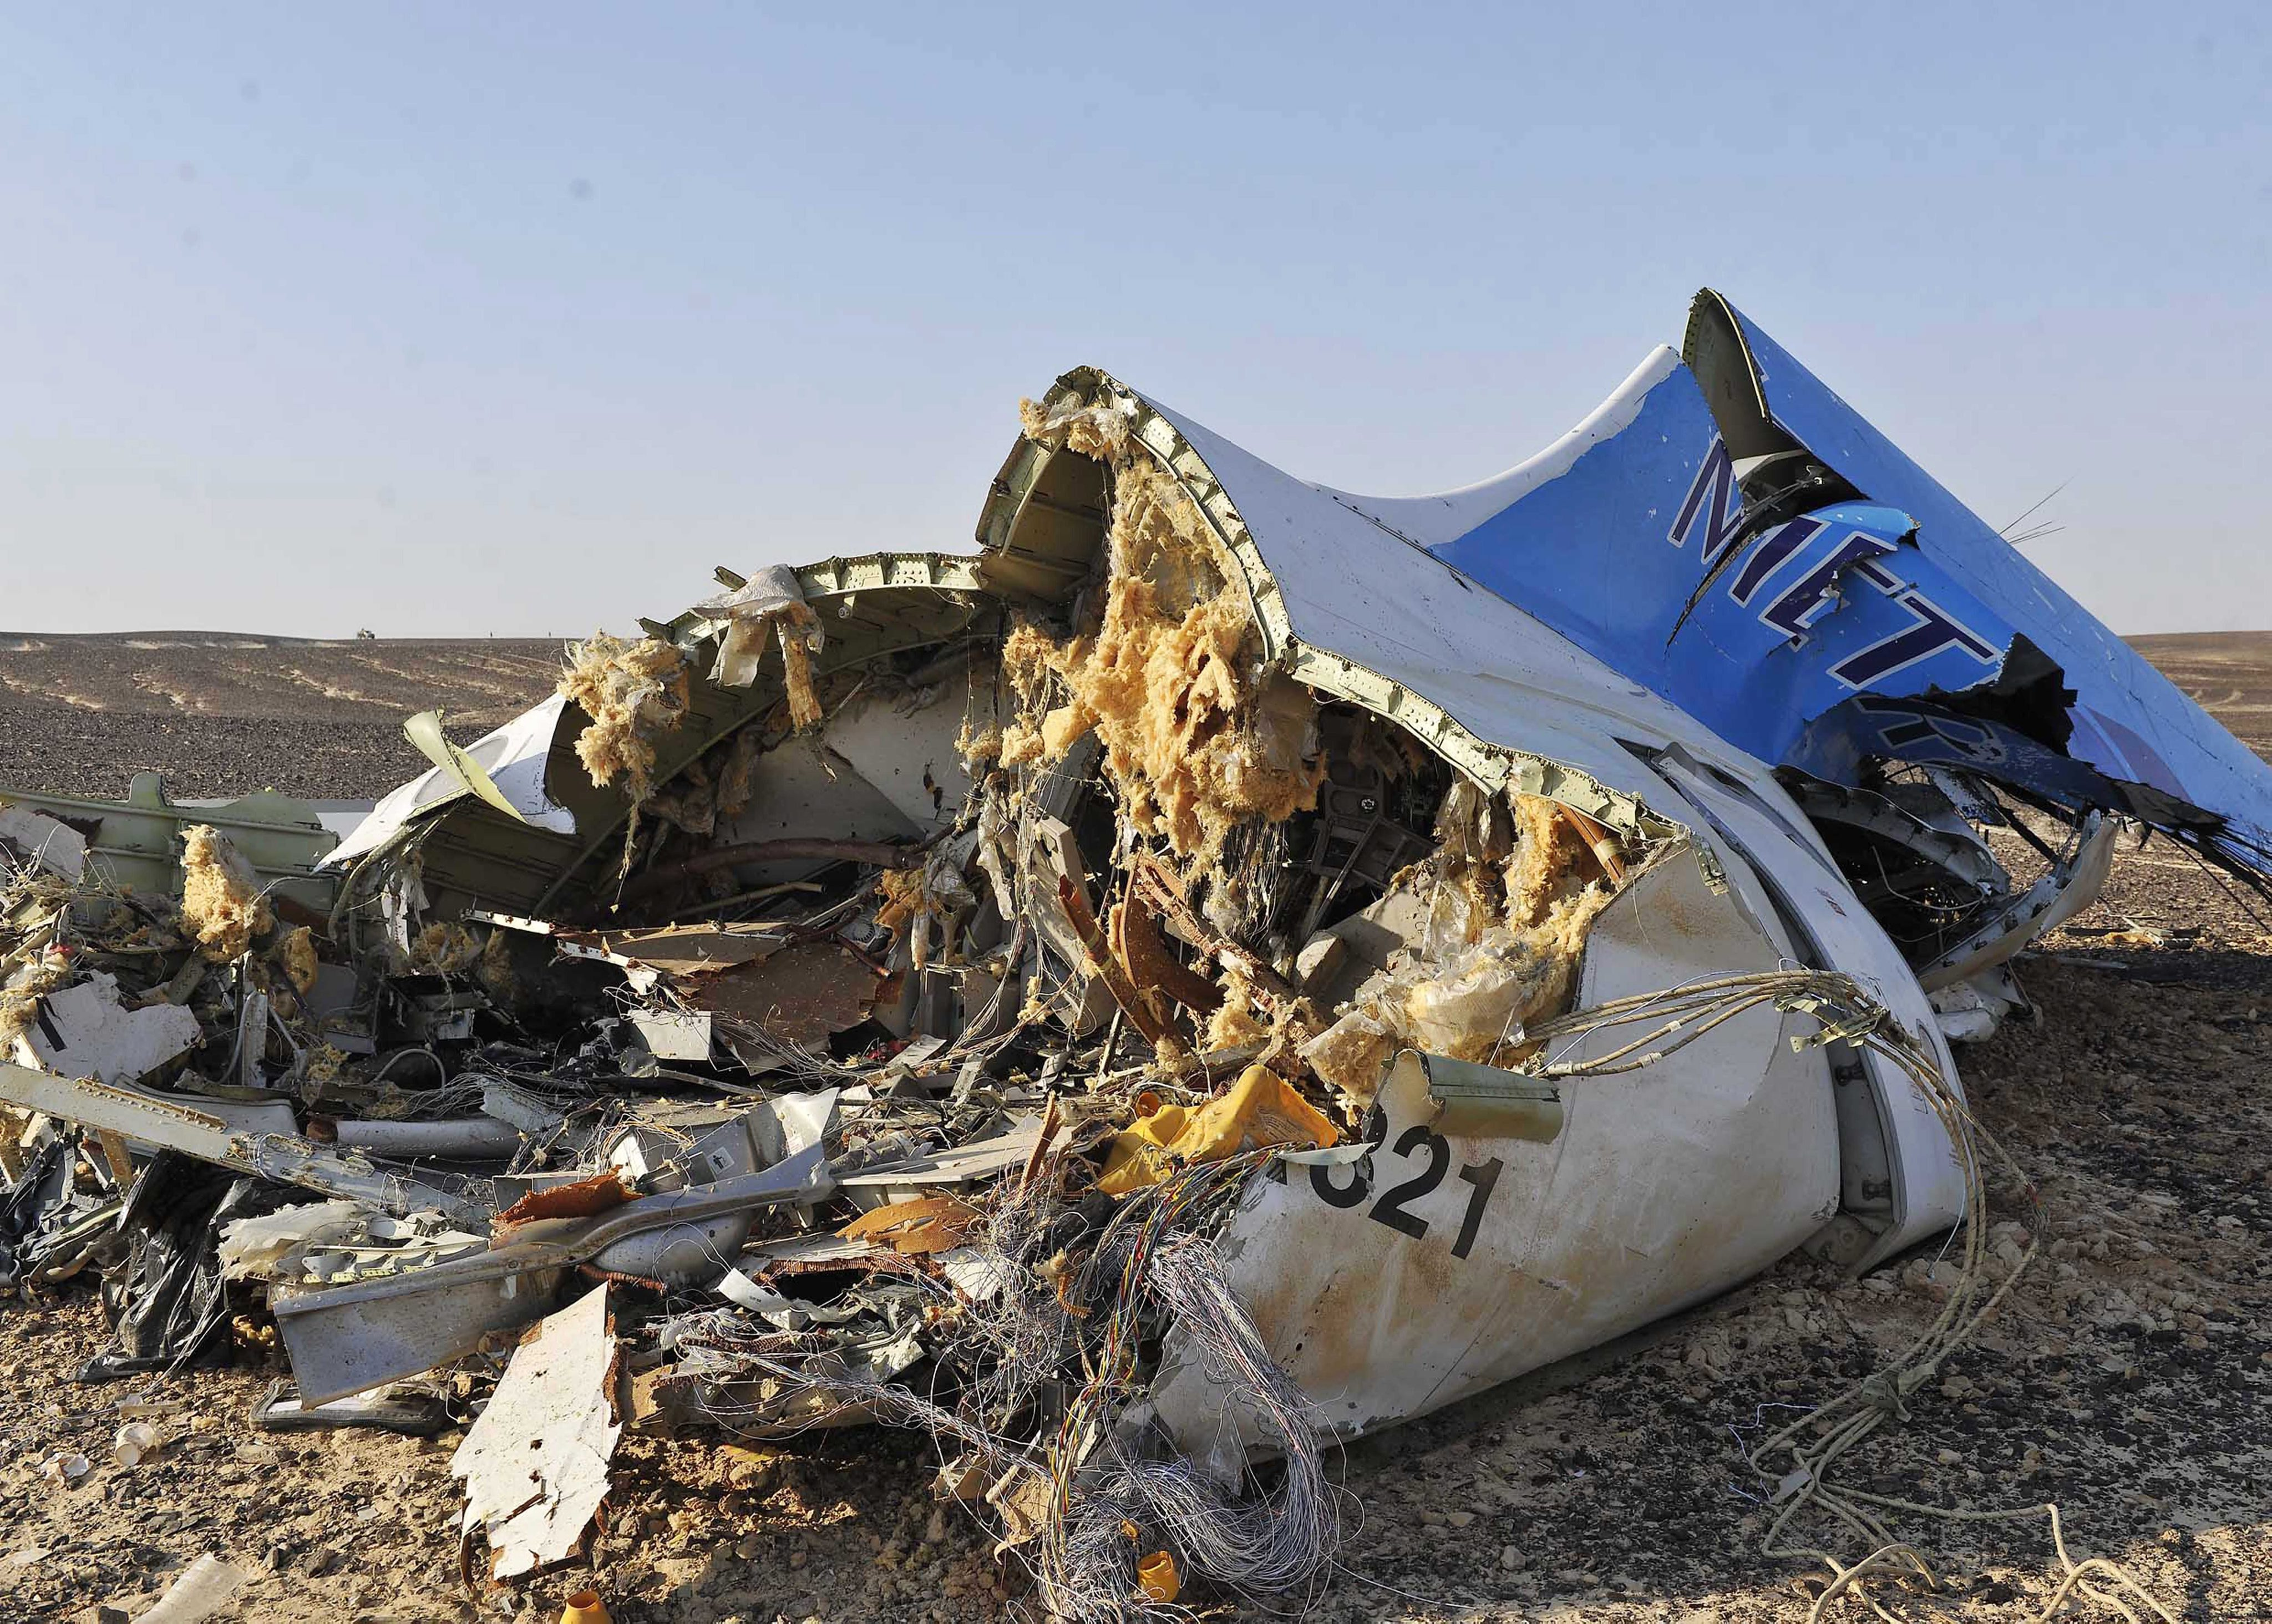 SIN01. Sinai (Egypt), .- Debris from crashed Russian jet lies on the sand at the site of the crash, Sinai, Egypt, 31 October 2015. According to reports the Egyptian Government has dispatched more than 45 ambulances to the crash site of the Kogalymavia Metrojet Russian passenger jet, which disappeared from raider after requesting an emergency landing early 31 October, crashing in the mountainous al-Hasanah area of central Sinai. The black box has been recovered at the site. (Egipto) EFE/EPA/STR EGYPT OUT Authorities fear all on board crashed Russian jet dead